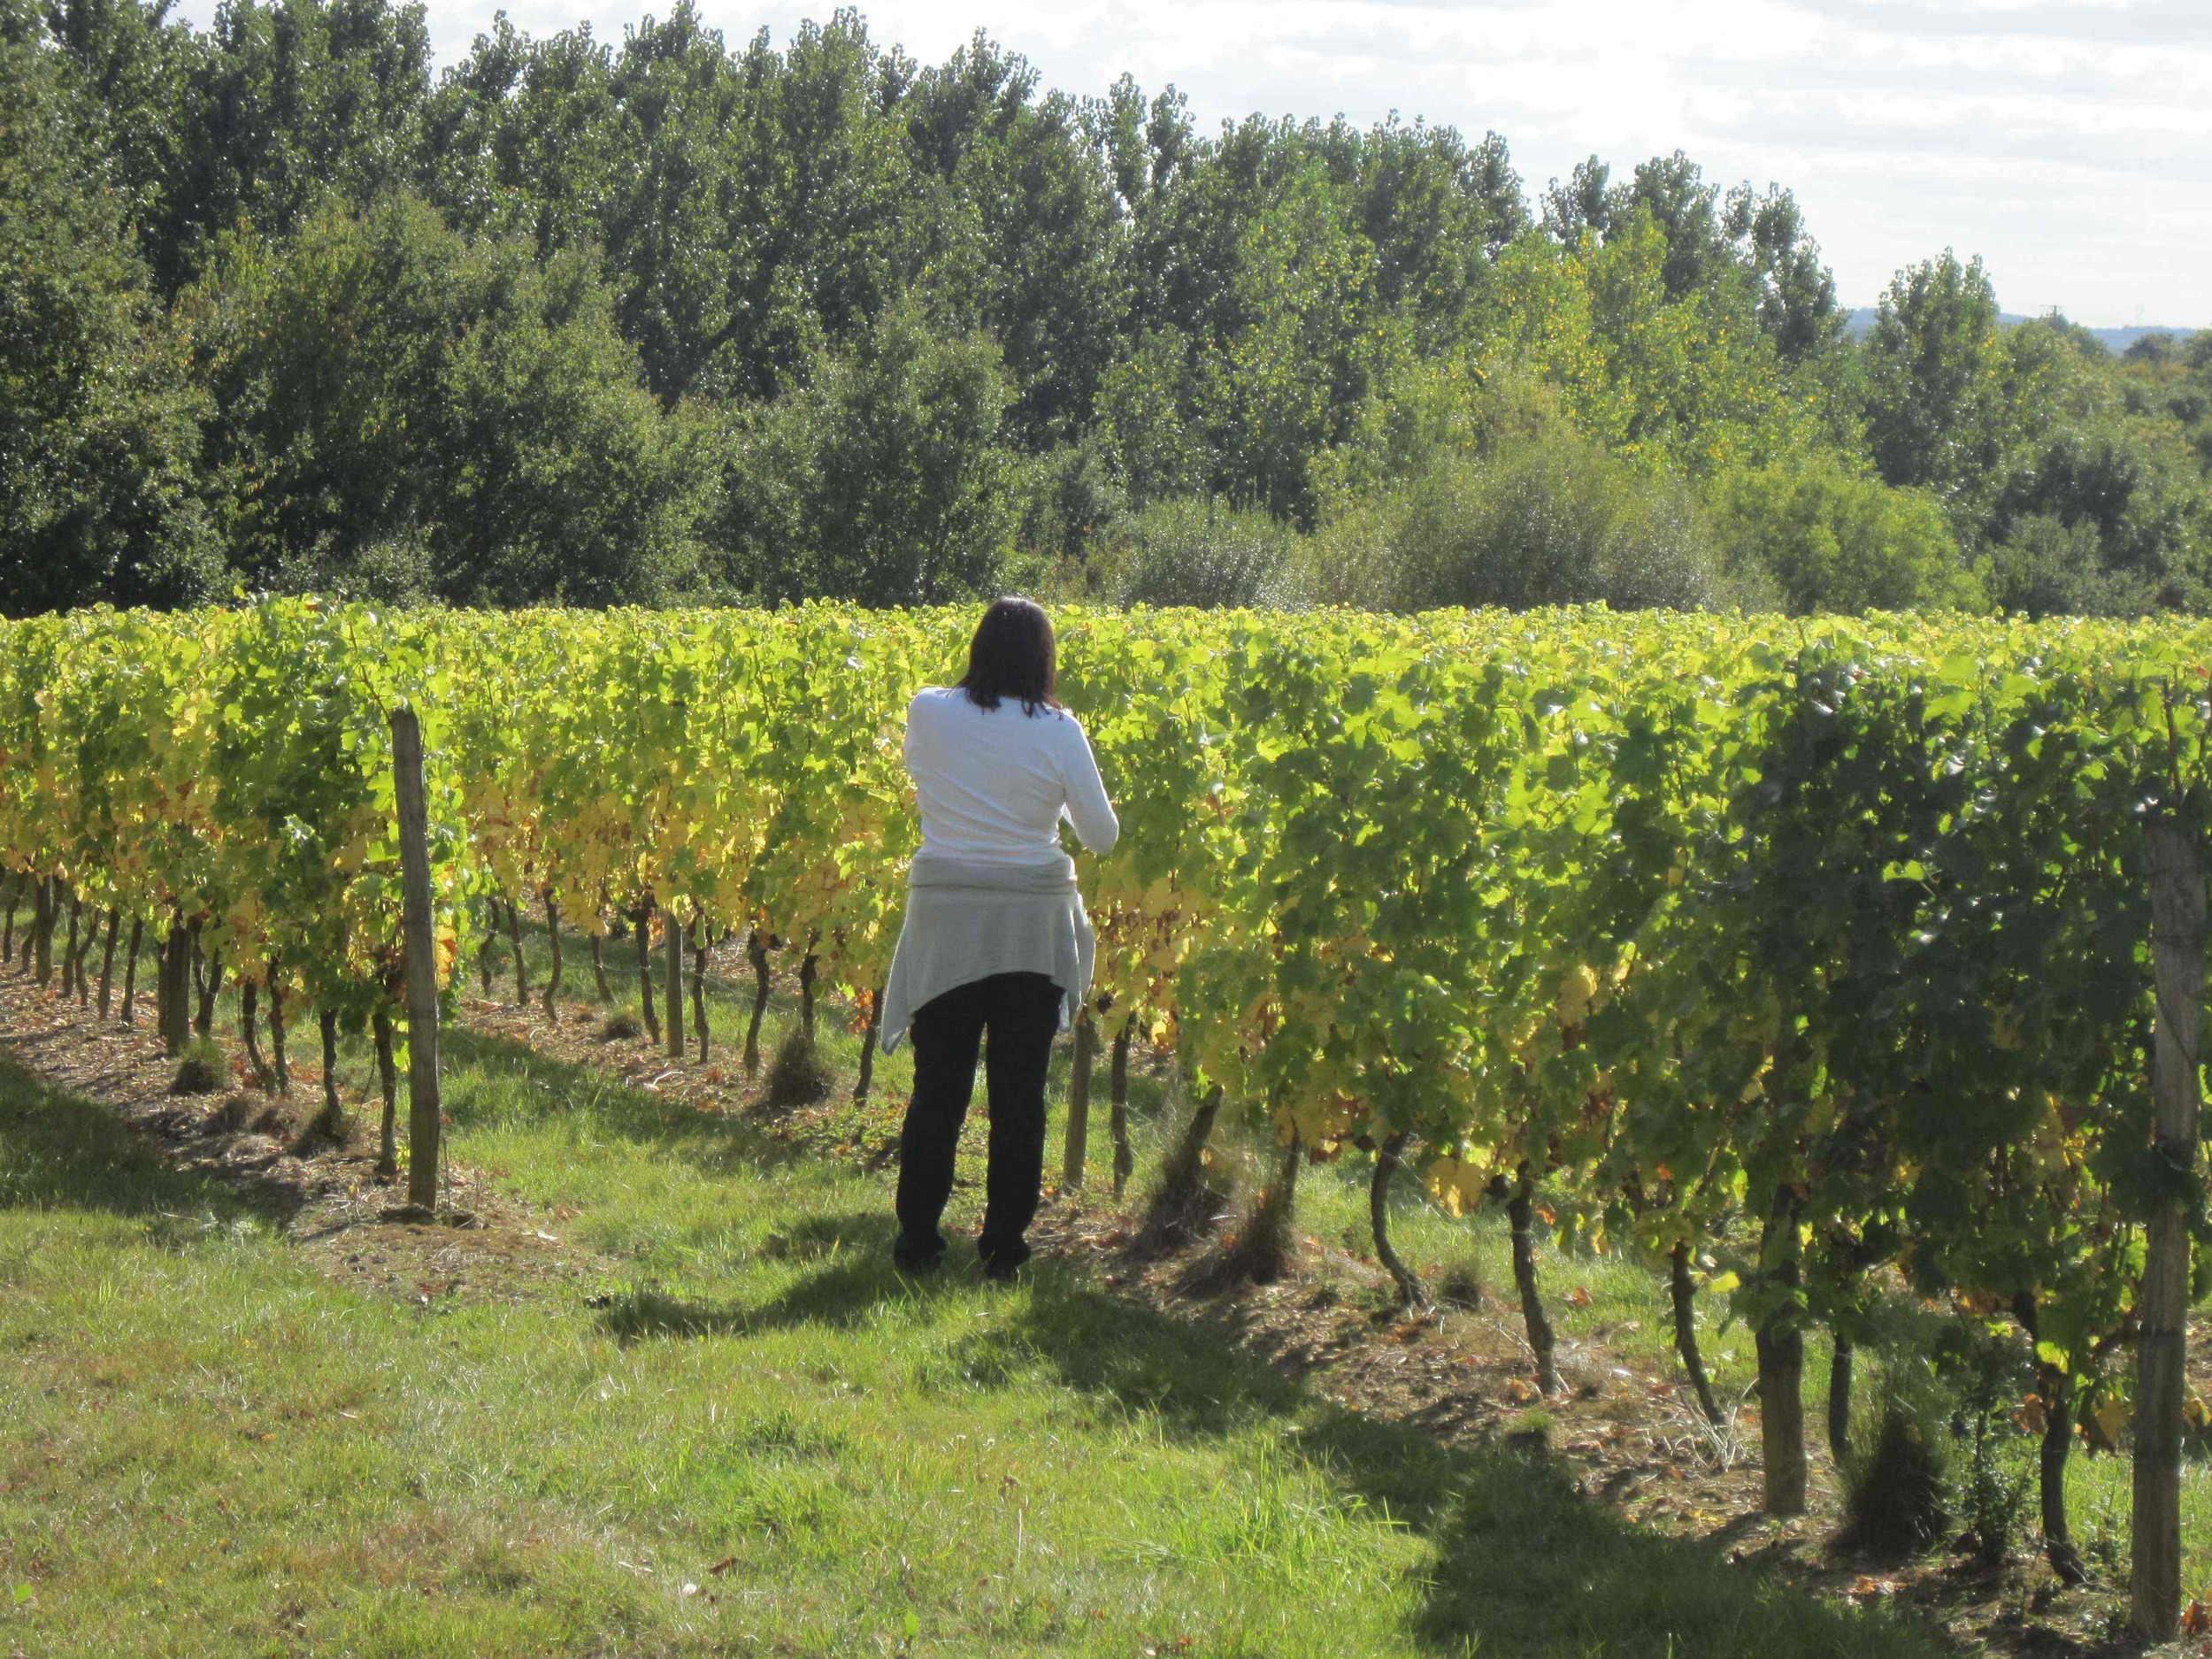 Candace in the vineyard